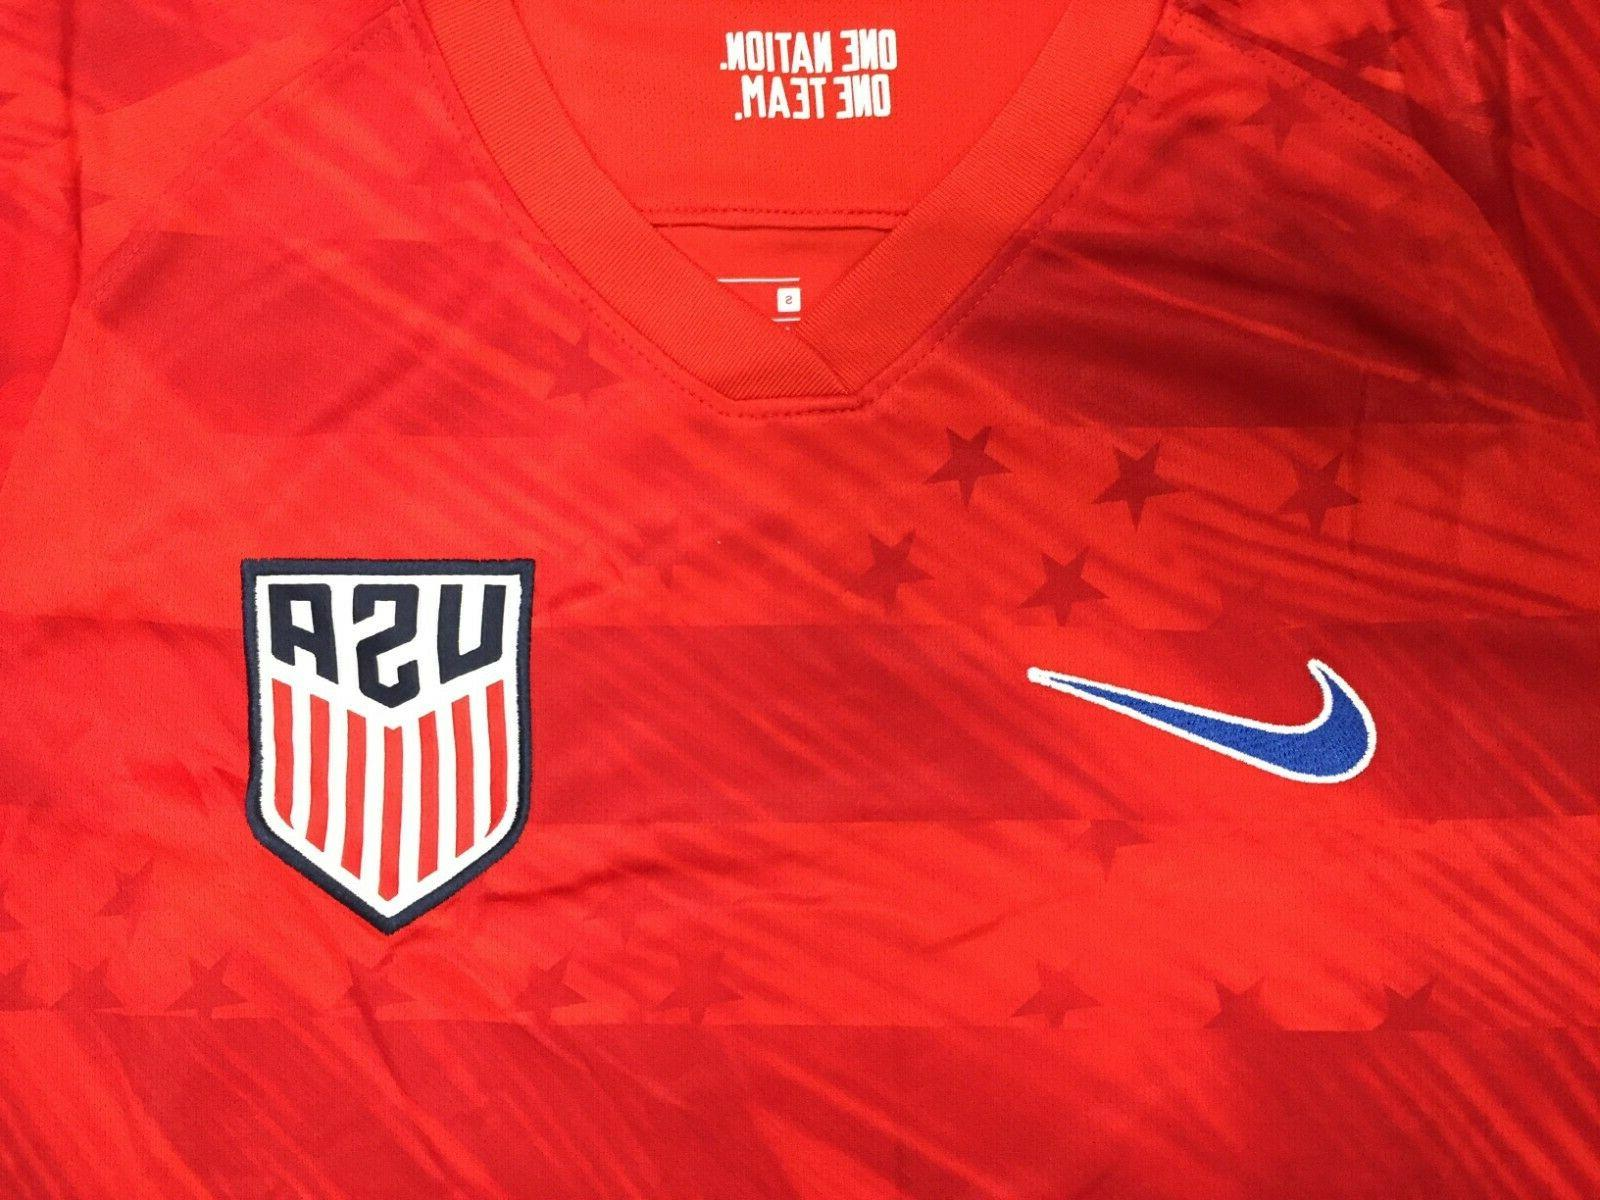 NEW USA JERSEY RED AWAY